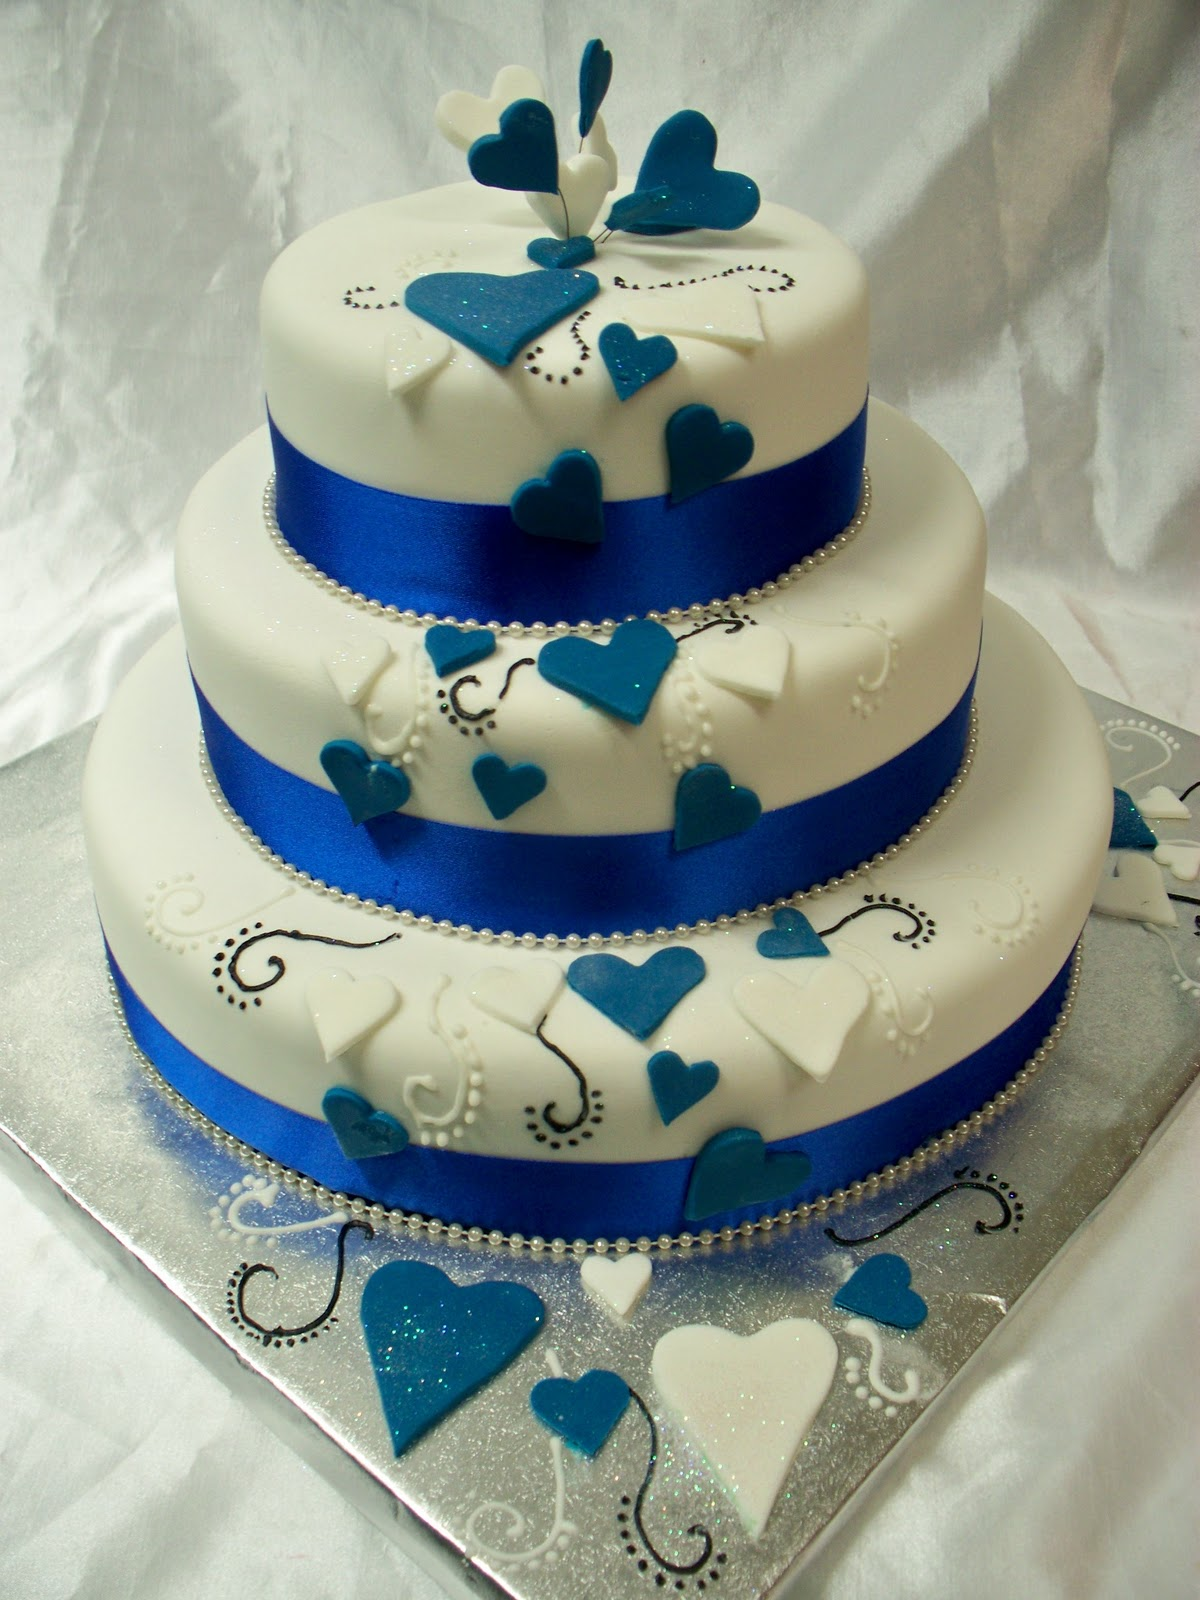 Wedding Cake Decorations Nz : Fresco Foods cakes: AFFORDABLE WEDDING CAKES - BY FRESCO ...